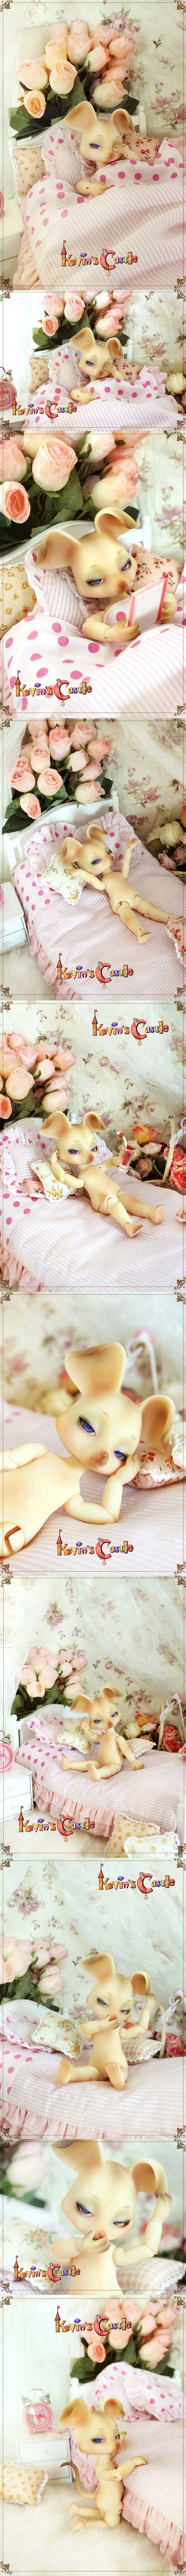 BJD Kevin-2 Ball-jointed doll